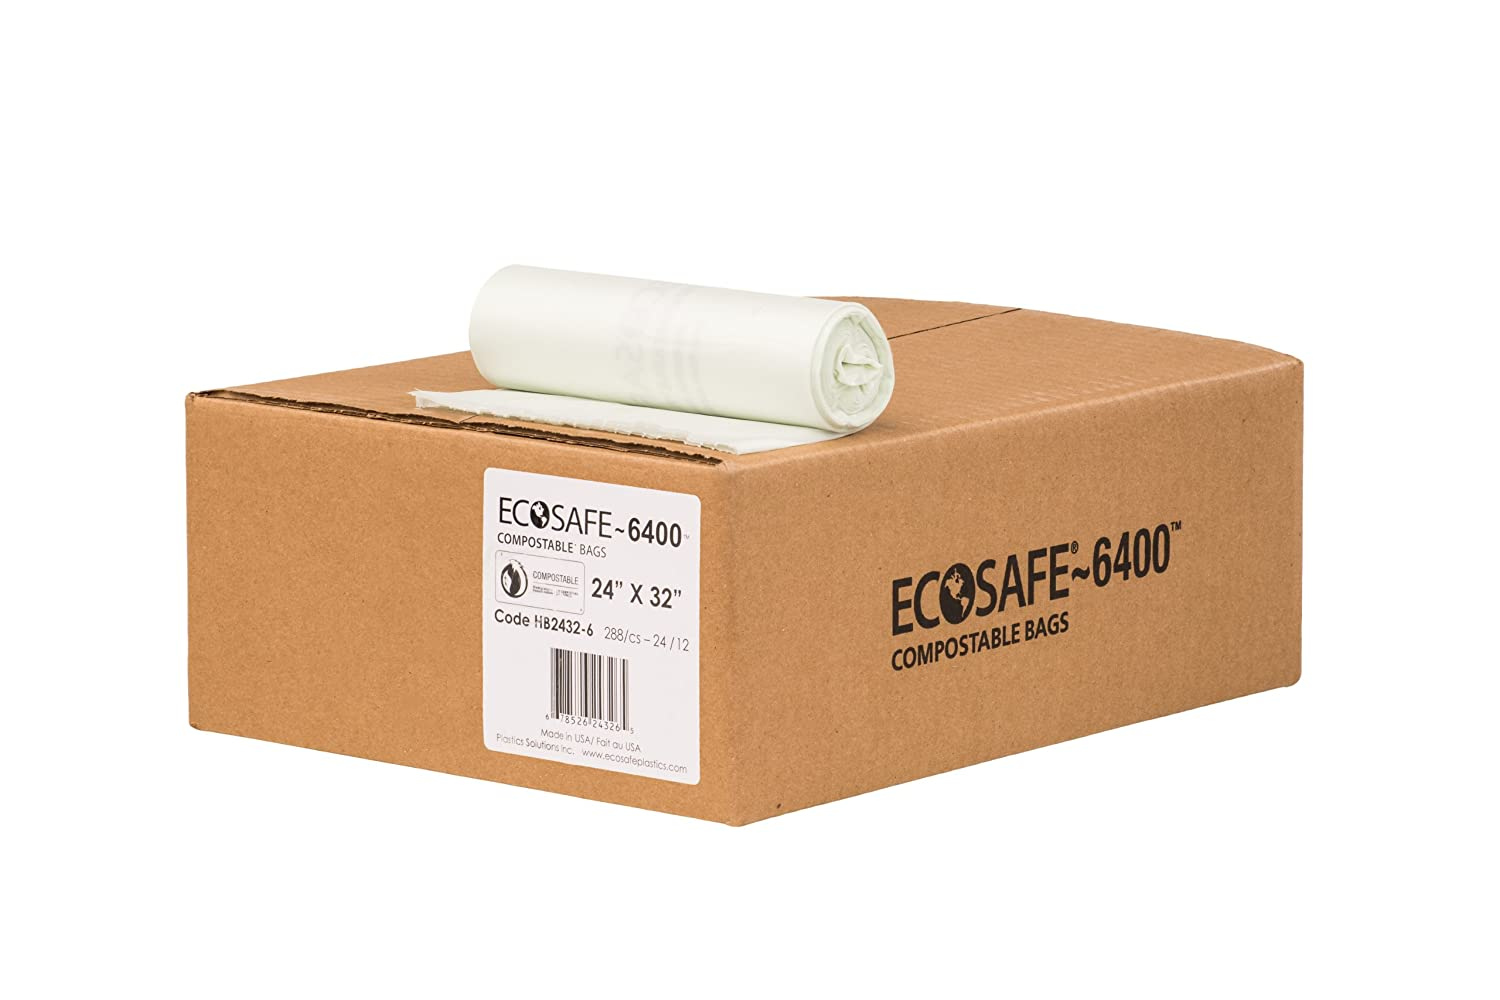 EcoSafe-6400 HB2432-6 Compostable Bag, Certified Compostable, 13-Gallon, Green (Pack of 288)